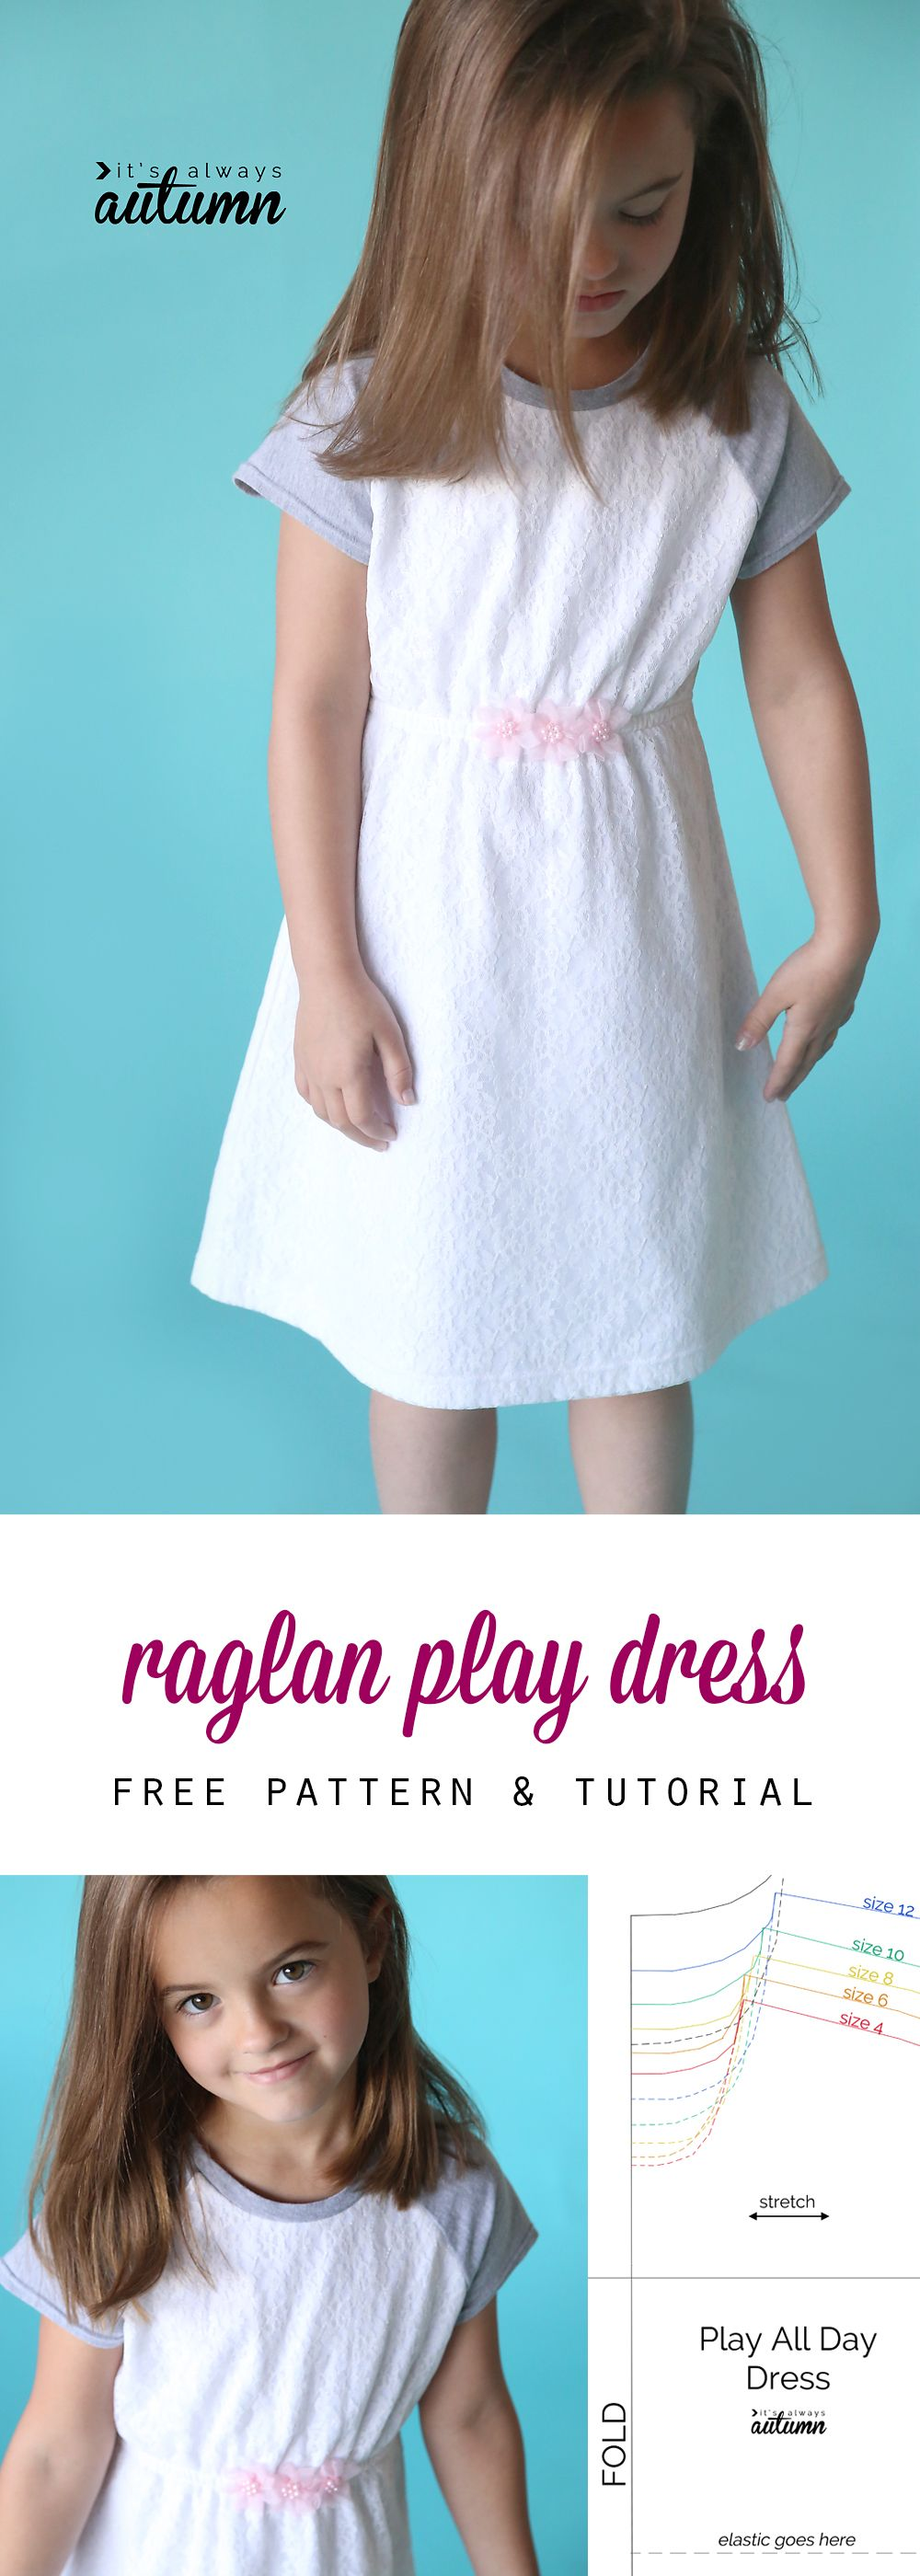 The play all day dress free pattern wraglan sleeves pdf learn how to sew this cute raglan sleeve play dress for a little girl with the free printable pdf sewing pattern and easy tutorial jeuxipadfo Image collections